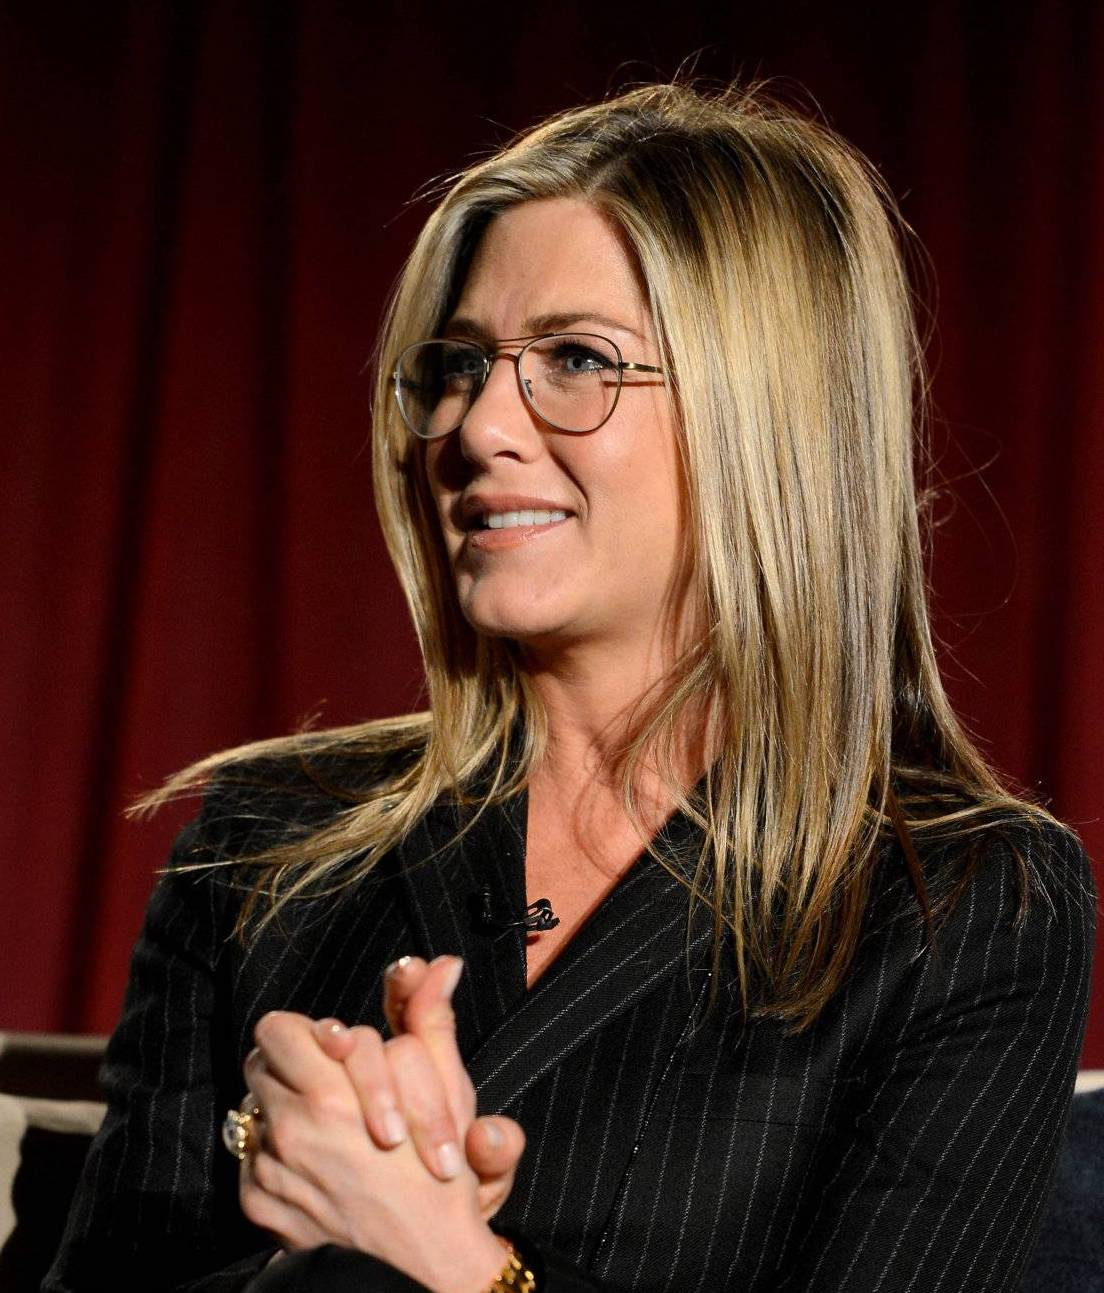 6 JEN DIRECTOR 20 Things You Never Knew About Jennifer Aniston